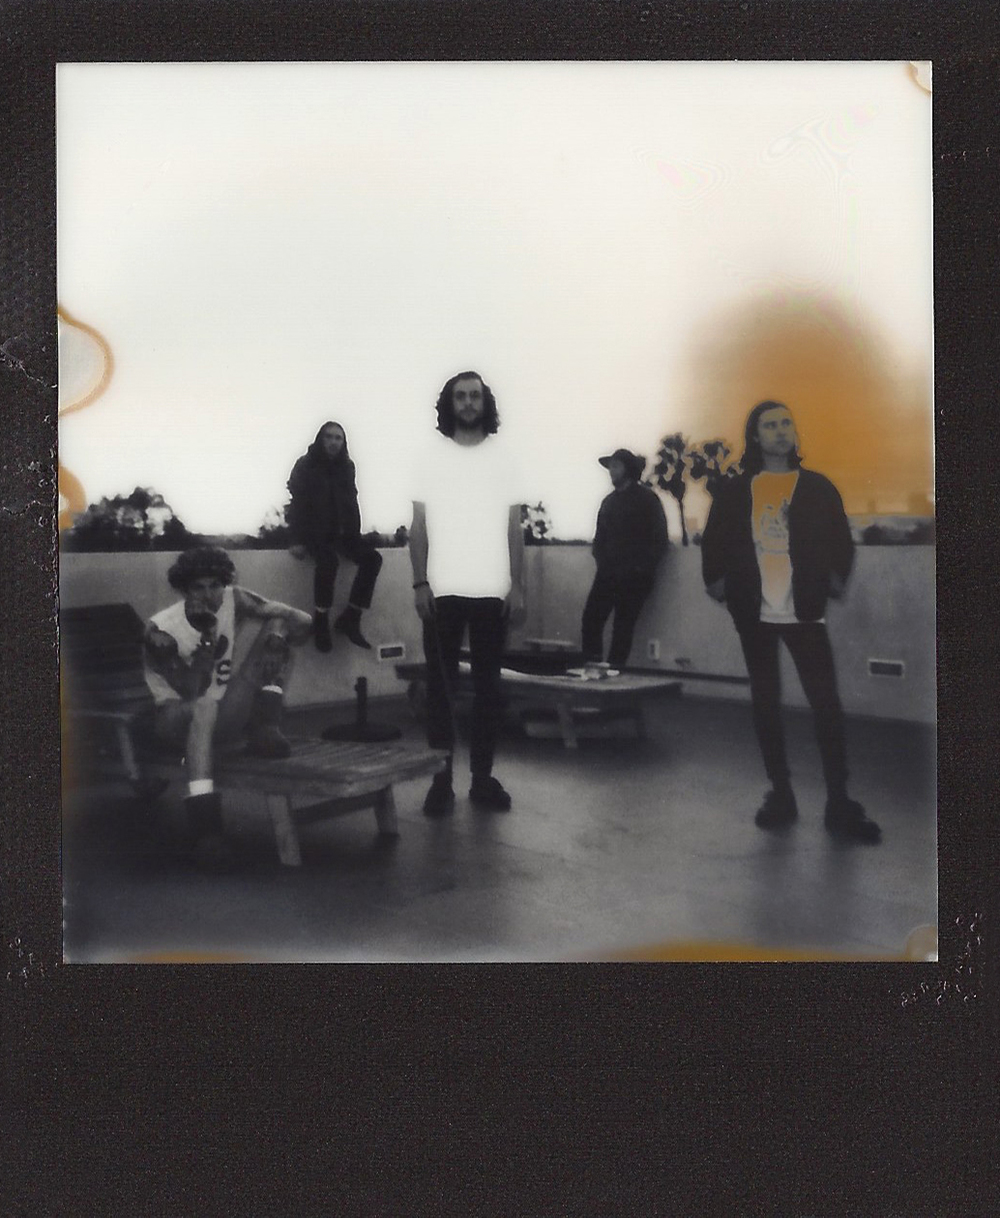 The-NBHD-Polaroid-8-casenruiz.jpg